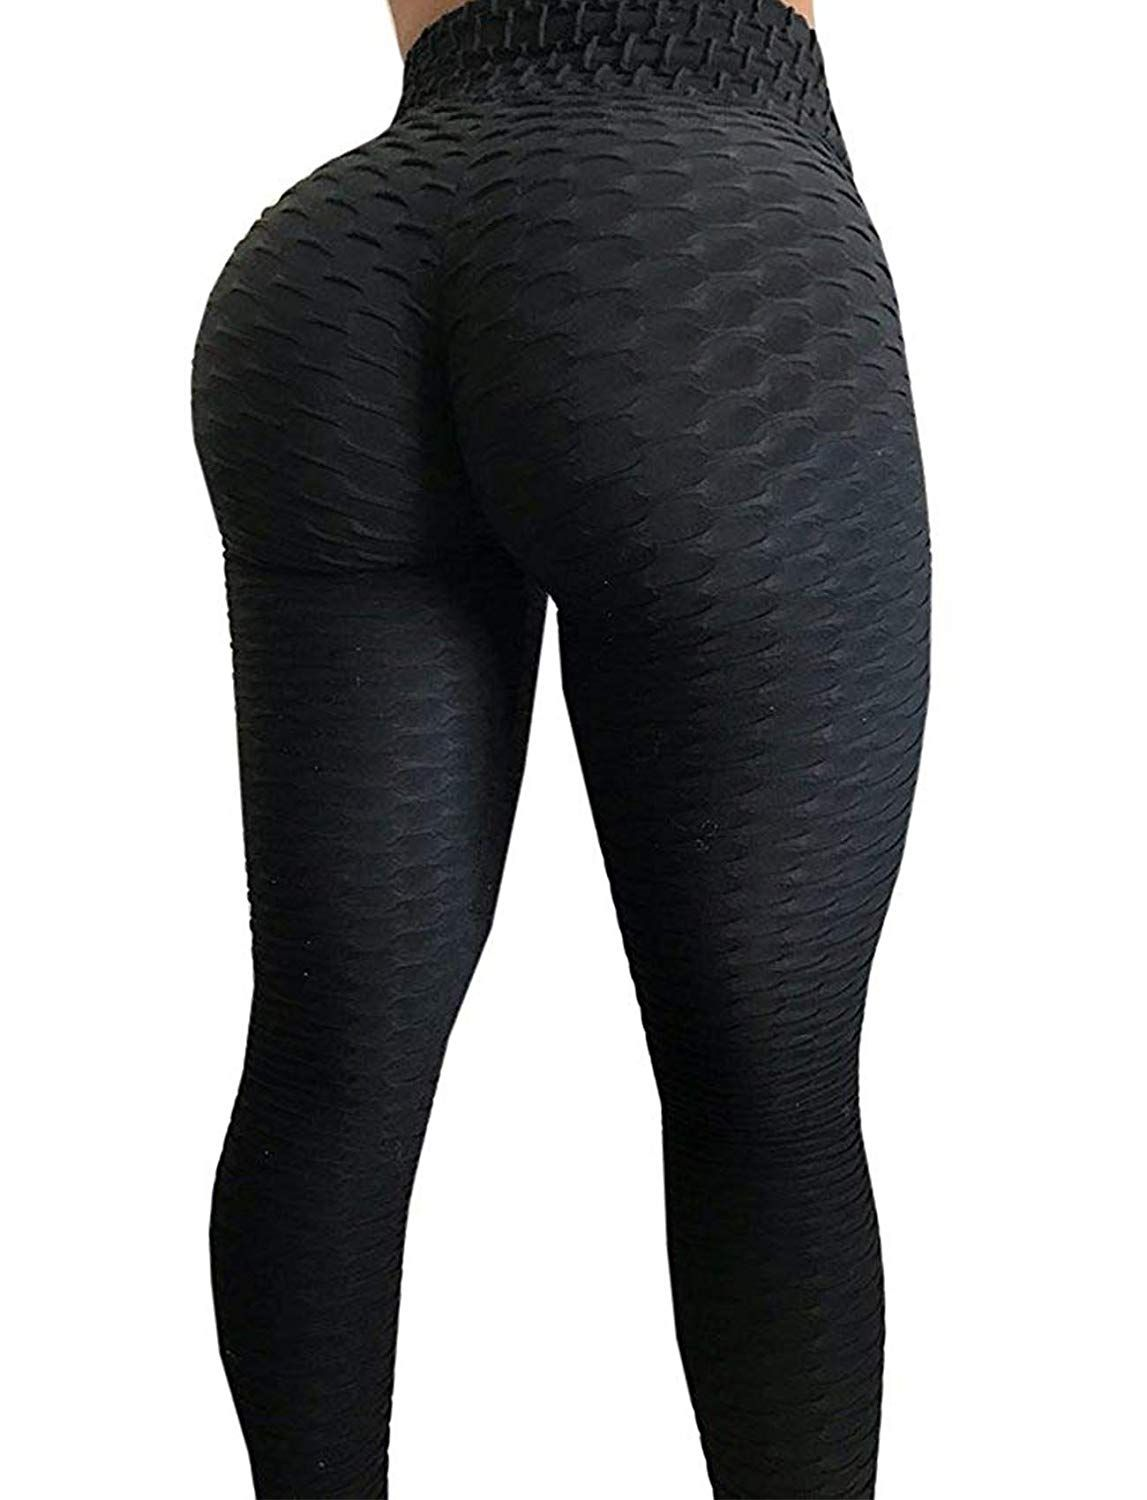 c12e4e9f12 SEASUM Women's High Waist Yoga Pants Tummy Control Slimming Booty Leggings  Workout Running Butt Lift Tights S